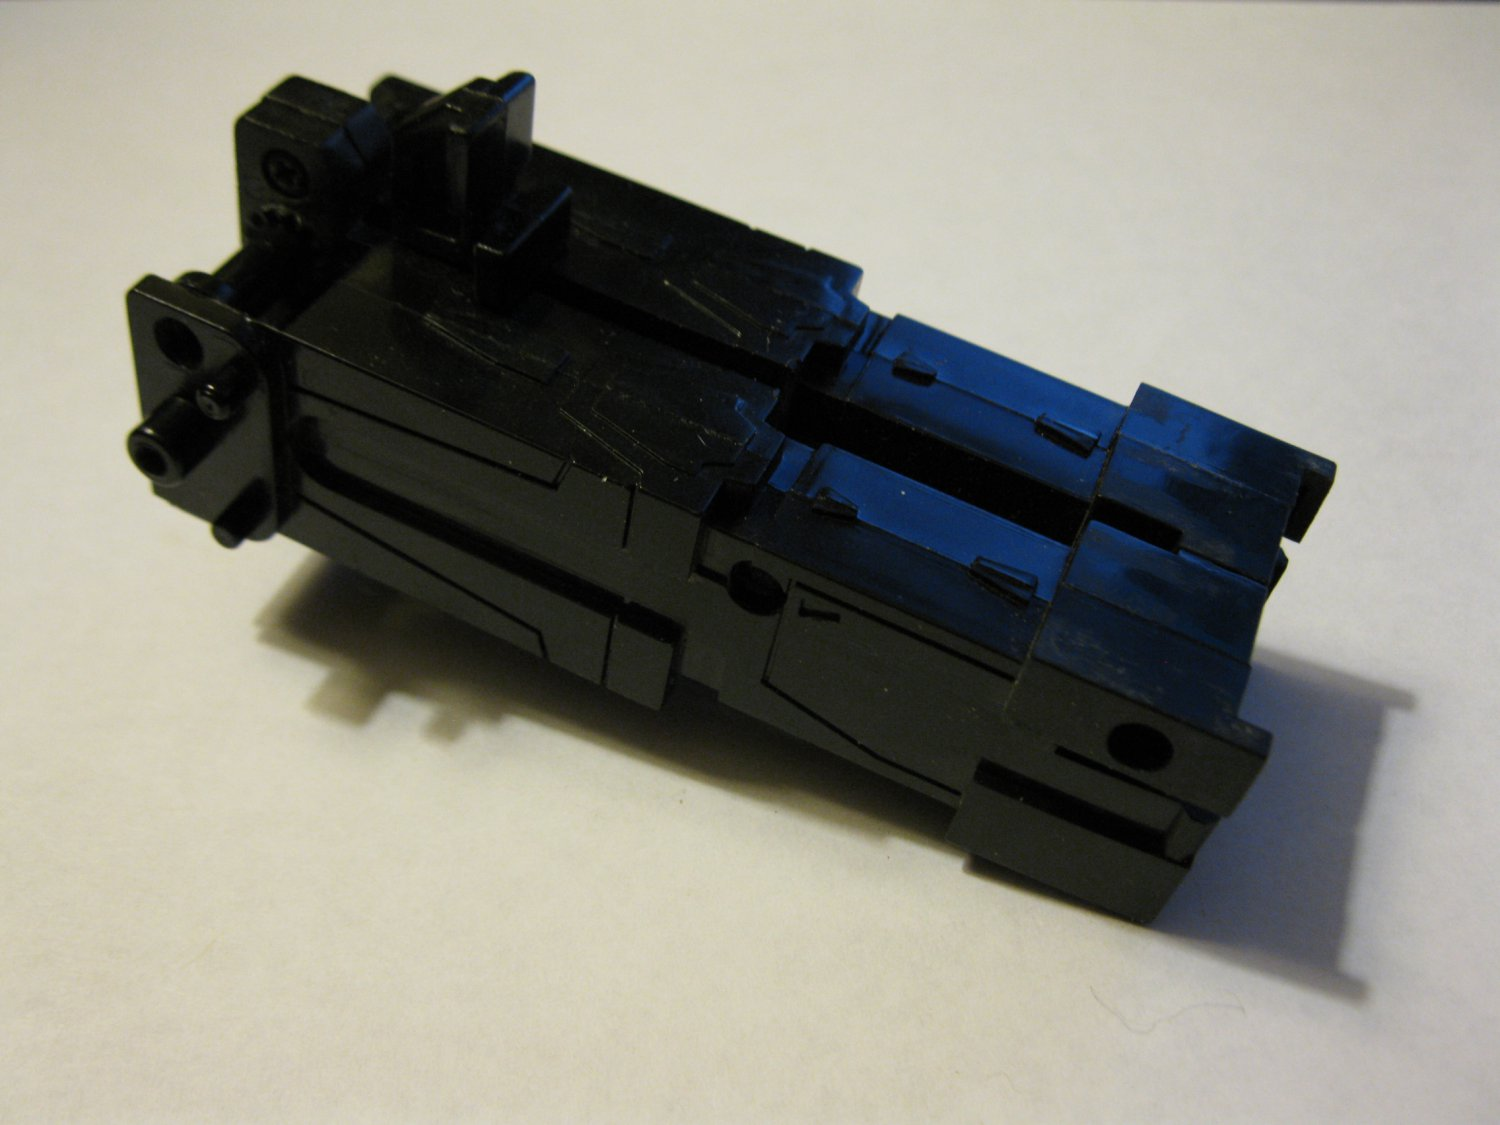 G1 Transformers Action figure part: 1986 Tantrum - Full Internal Body Section